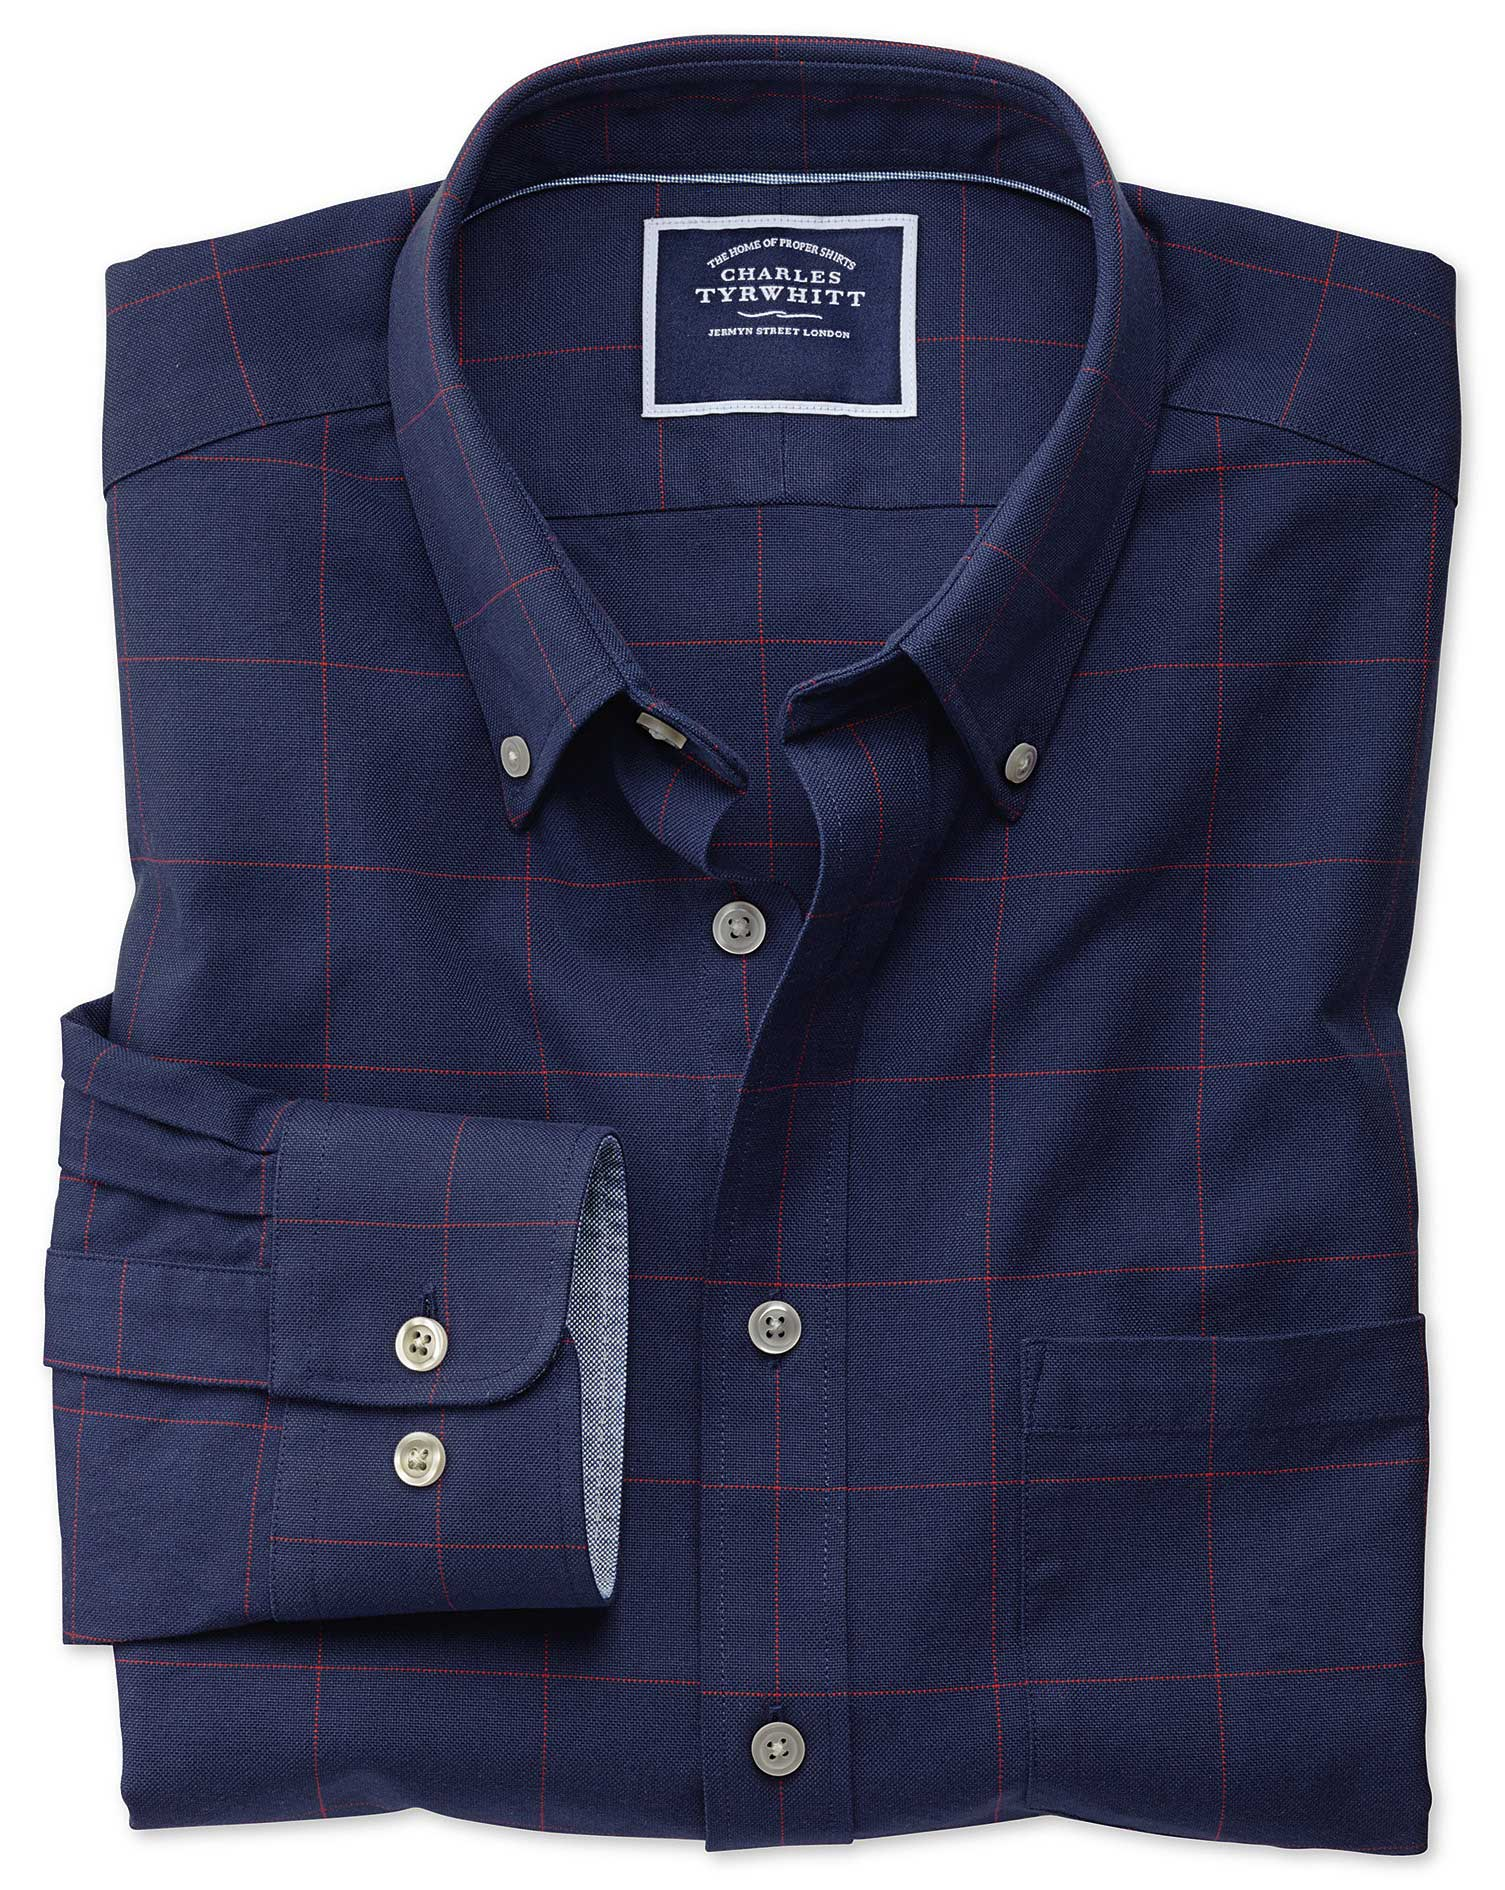 Slim Fit Navy and Red Check Washed Oxford Cotton Shirt Single Cuff Size Medium by Charles Tyrwhitt